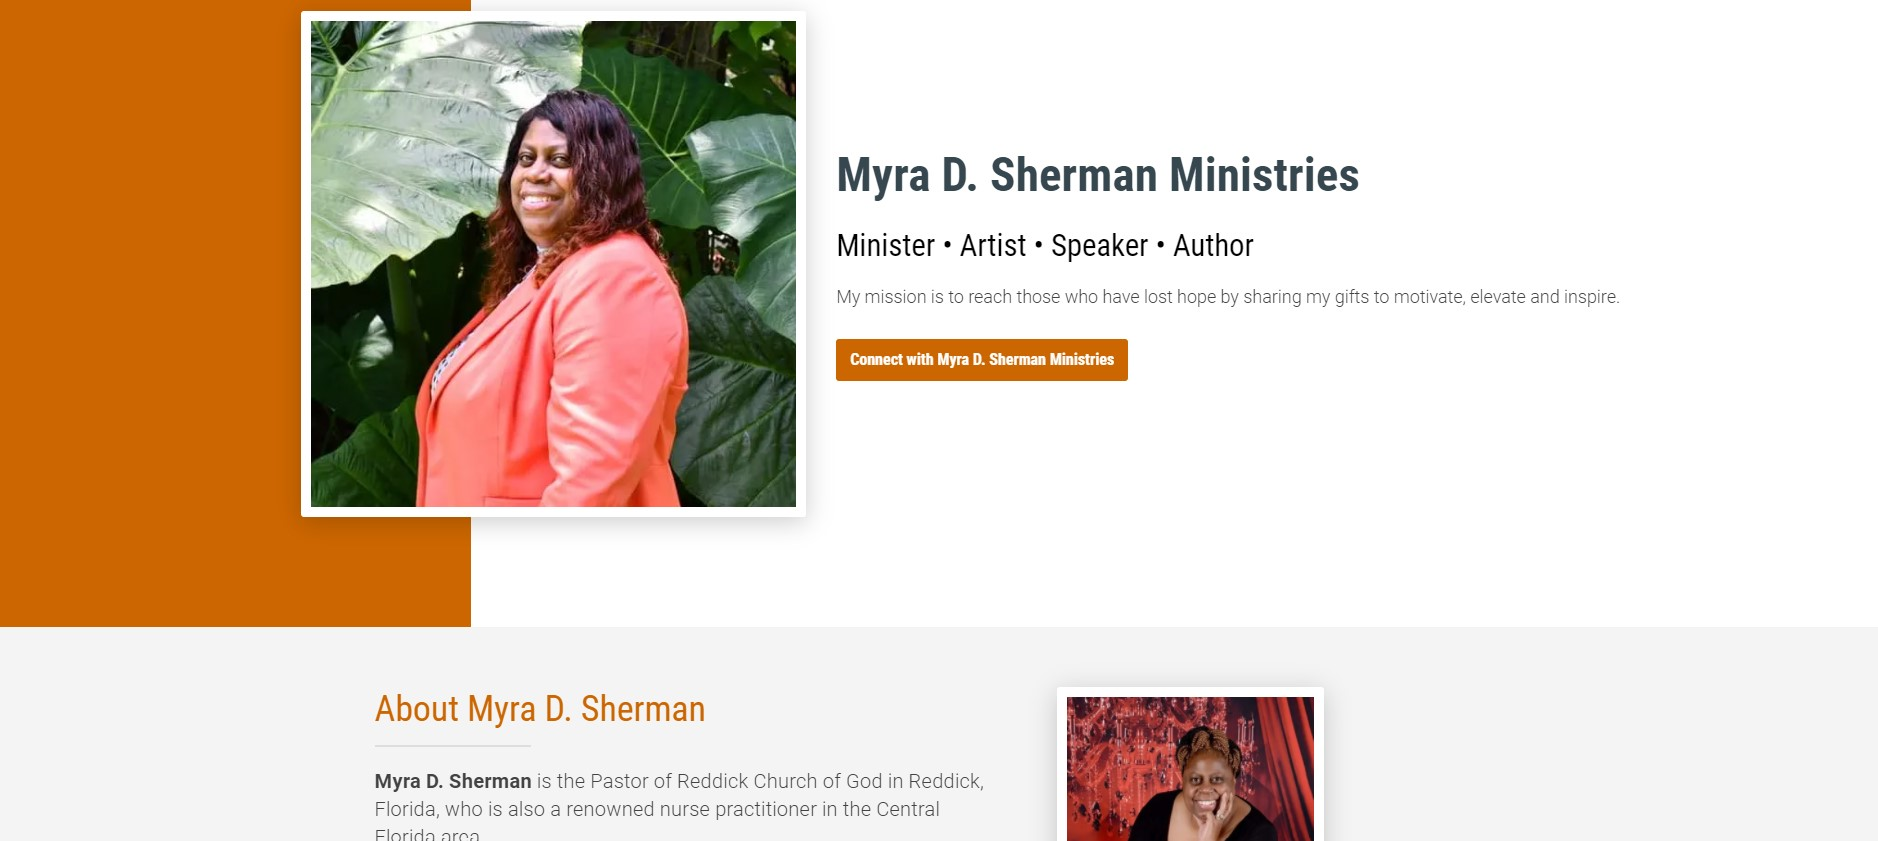 Landing Page for Myra D. Sherman Ministries